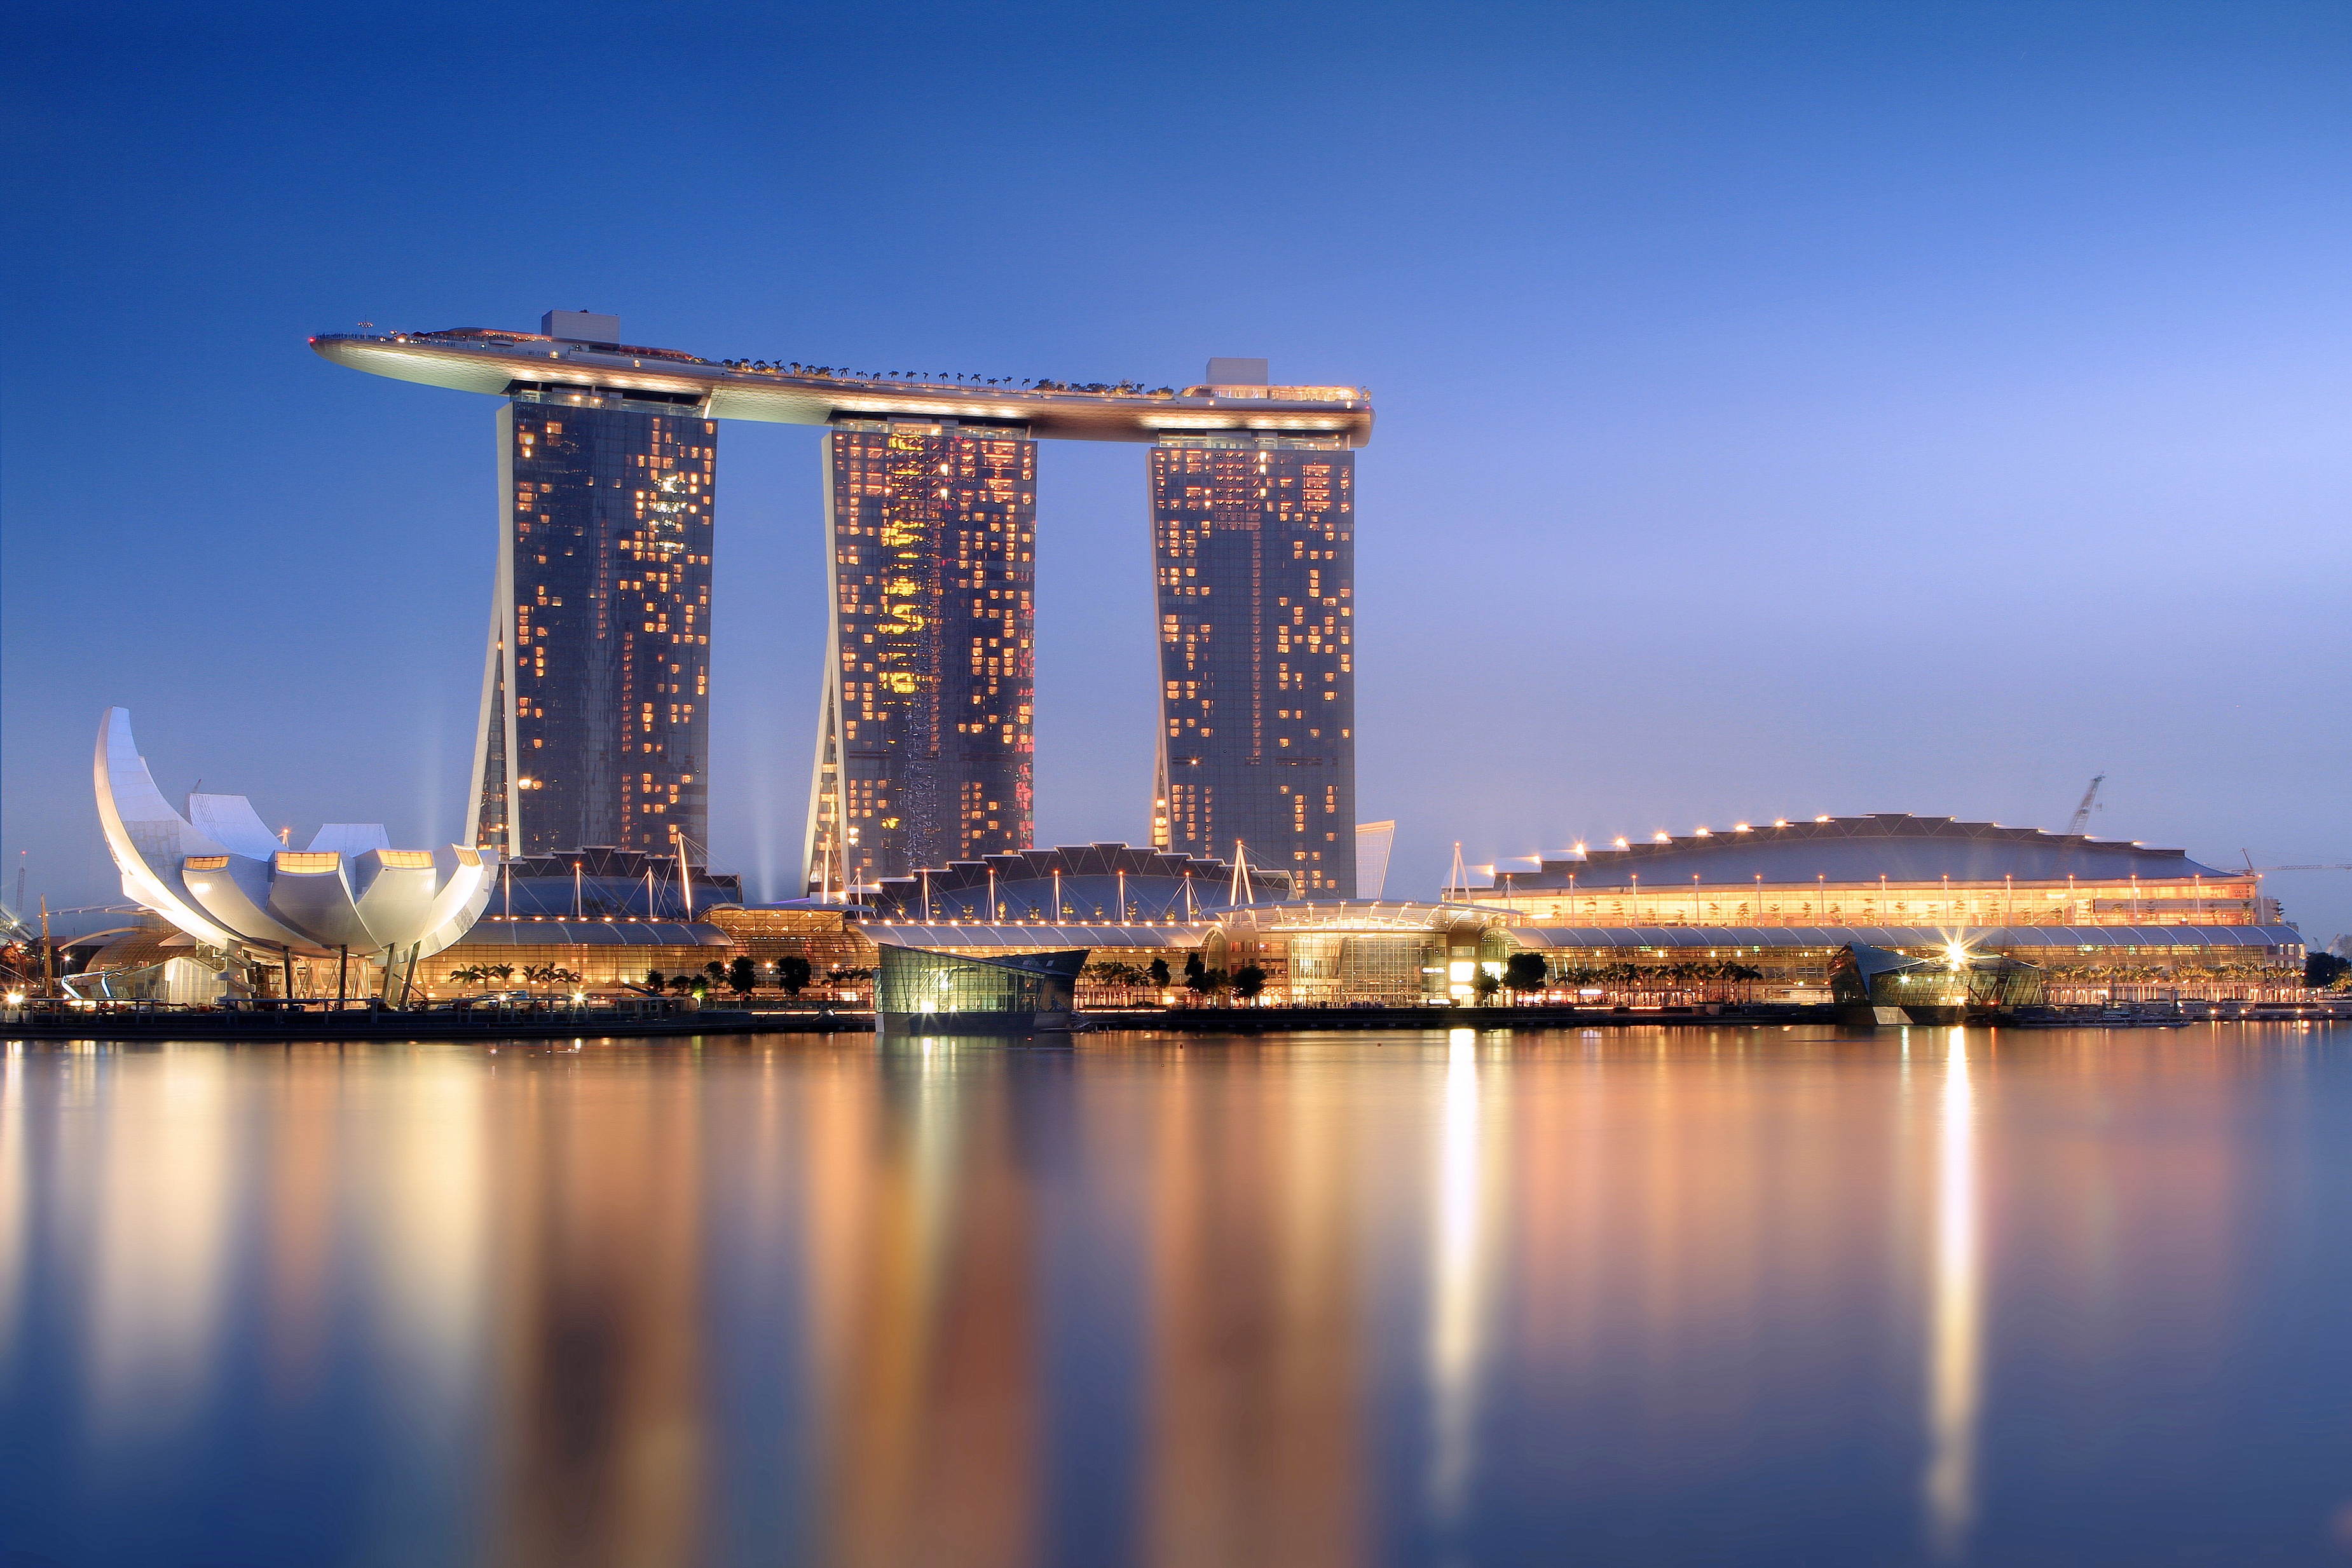 Marina_Bay - The Lion city Singapore